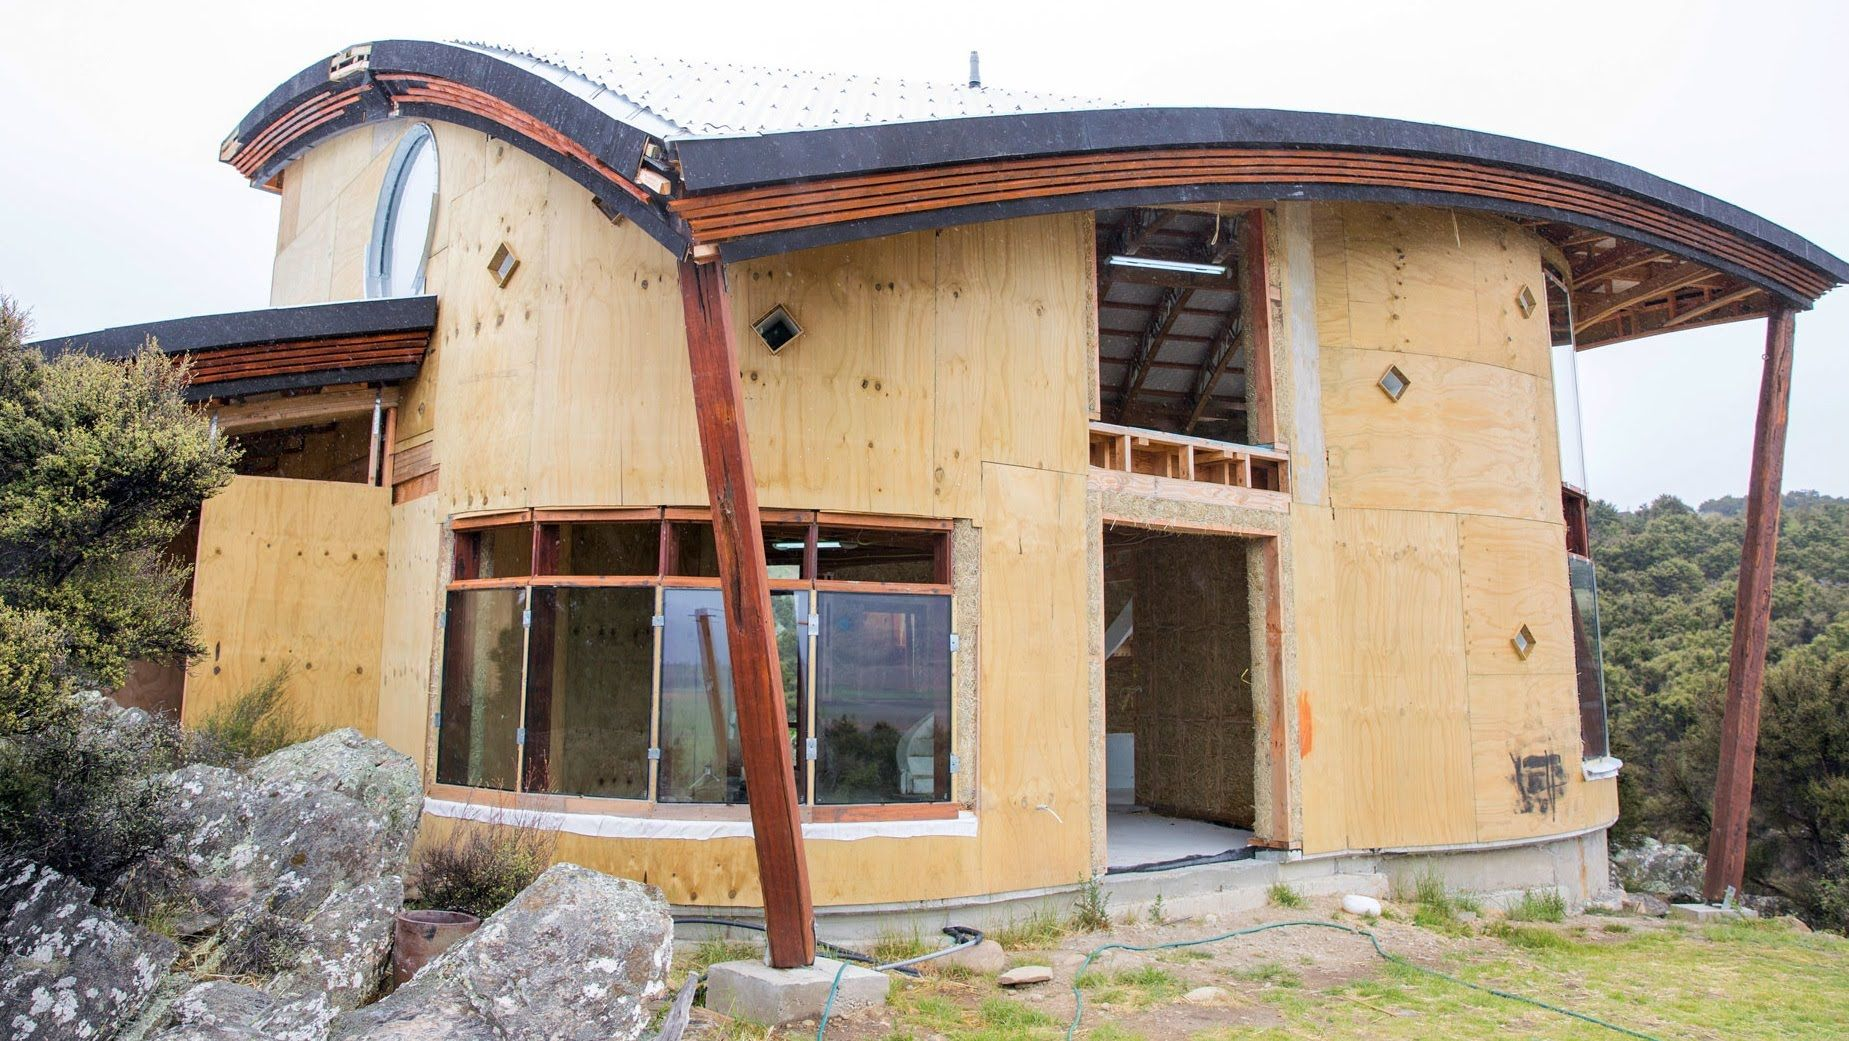 Grand designs new zealand s01e7 straw bale house green for Straw bale home designs